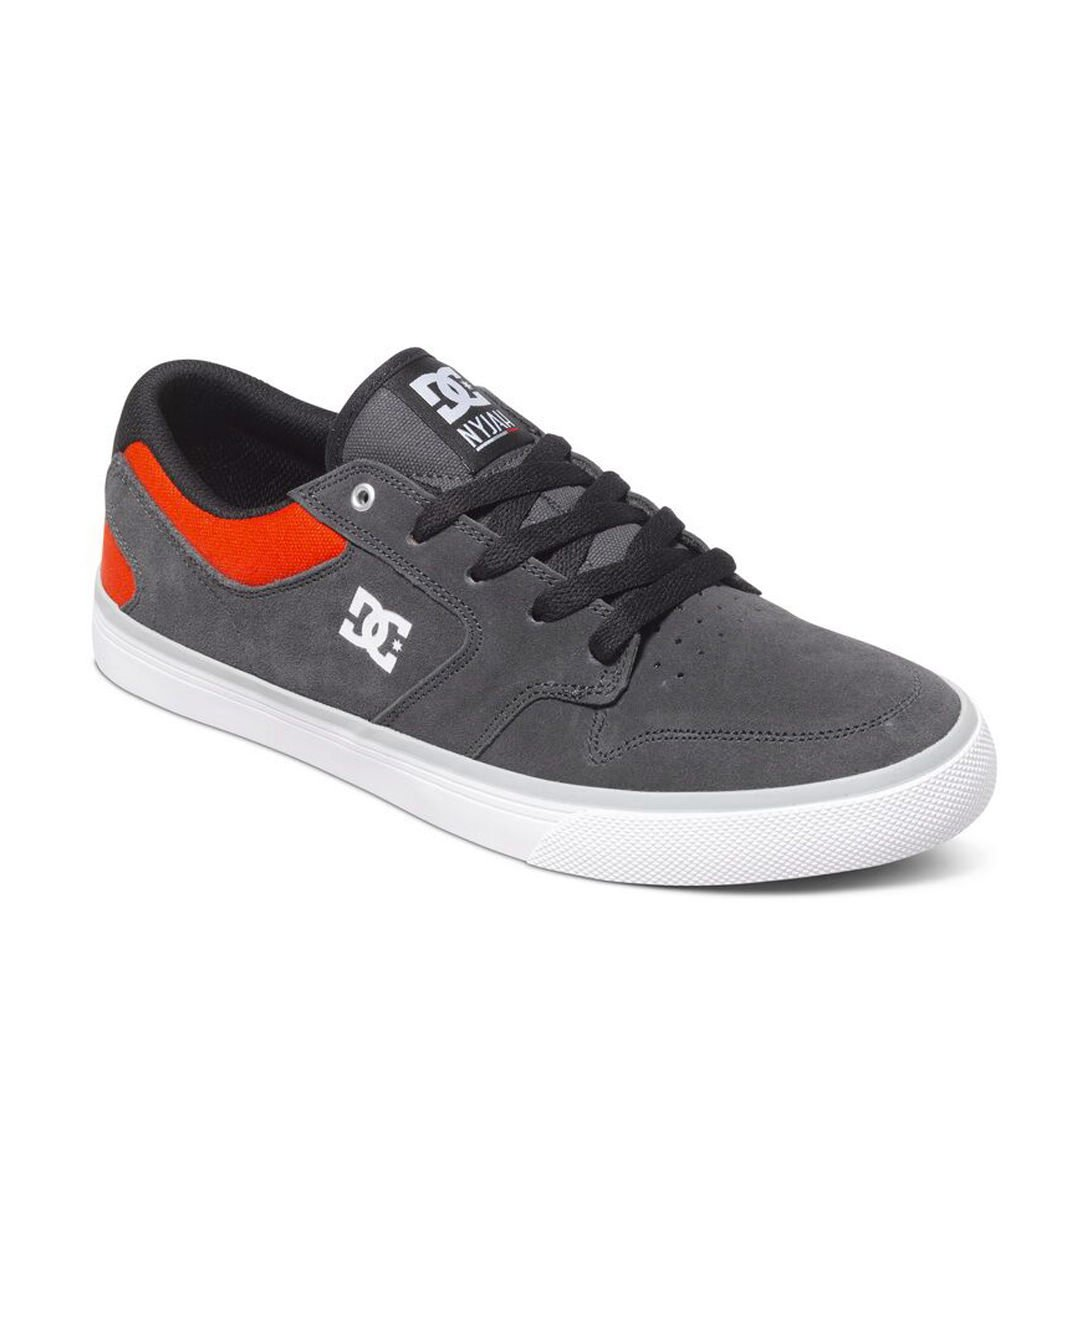 DC SHOES ARGOSY VULC - LM BOARD STORE